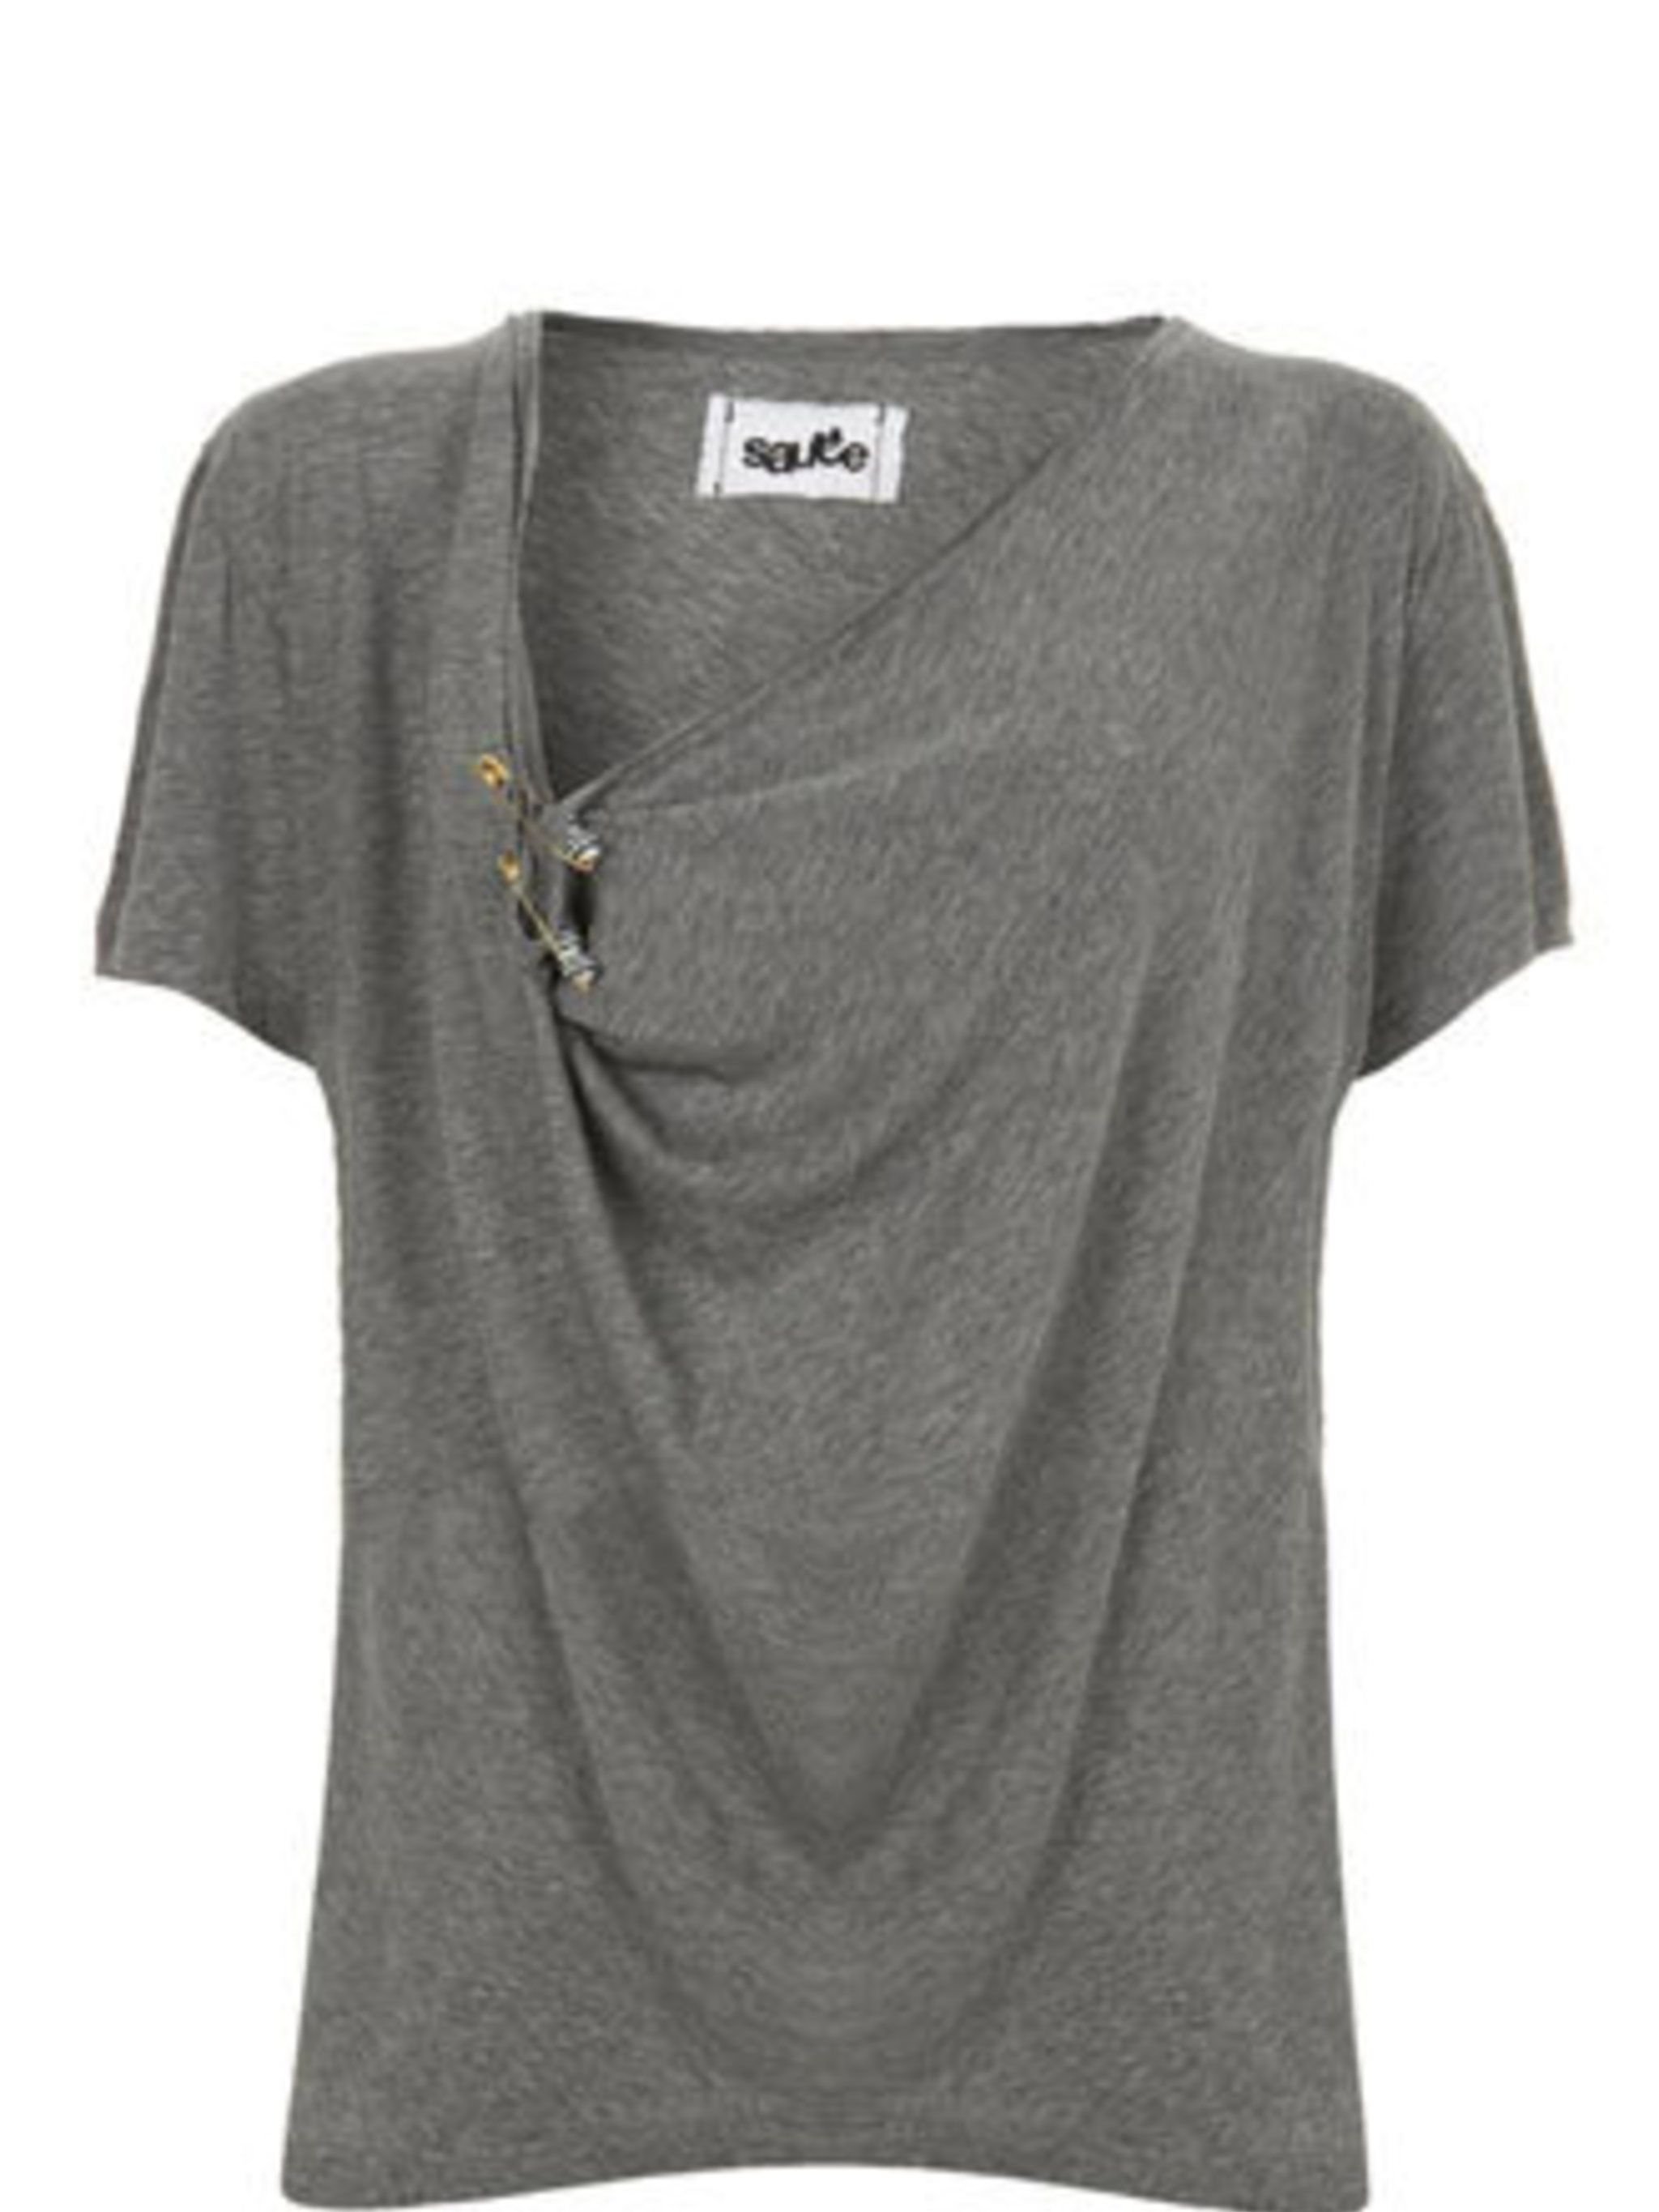 "<p>A fine tee is a must-have wardrobe staple. Pair with smart trousers, blazer and heels for the office. For the weekend, this will add a cool vibe to jeans.</p><p>T-Shirt, £48 by Sauce at <a href=""http://www.bunnyhug.co.uk/fashionshop/gbu0-prodshow/Sauce"